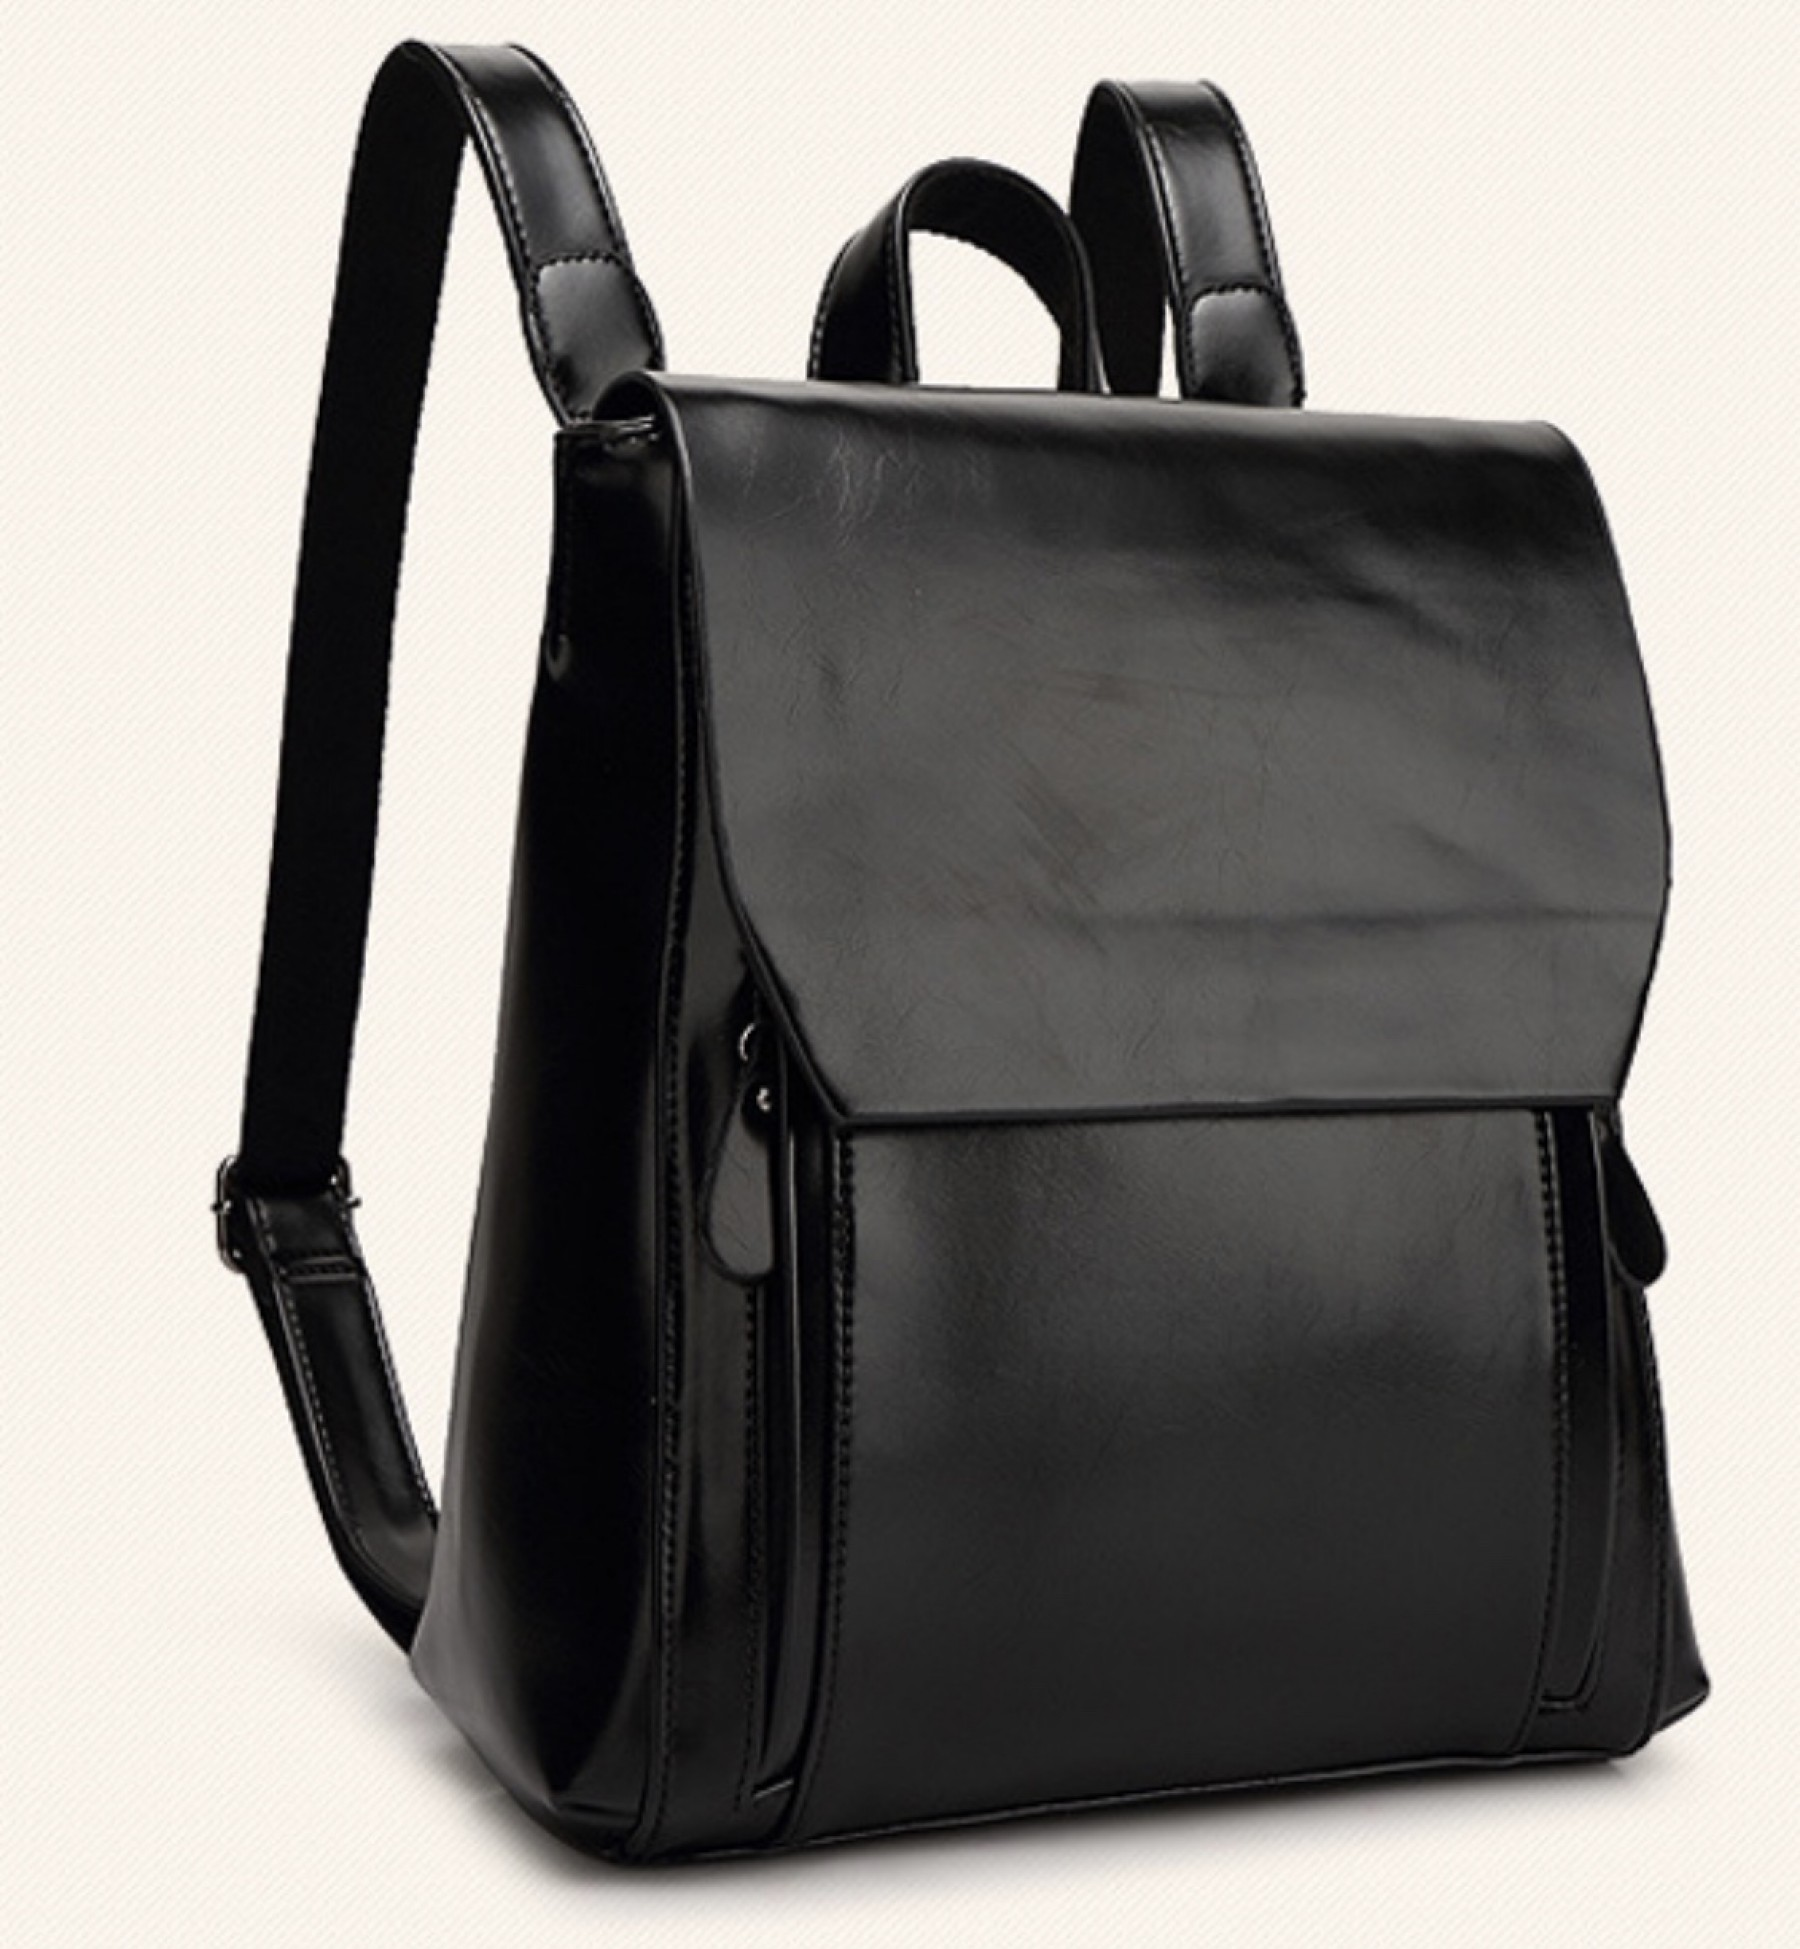 SZ9-16017- Women's Modern Style Classic Leather Backpack (Black)